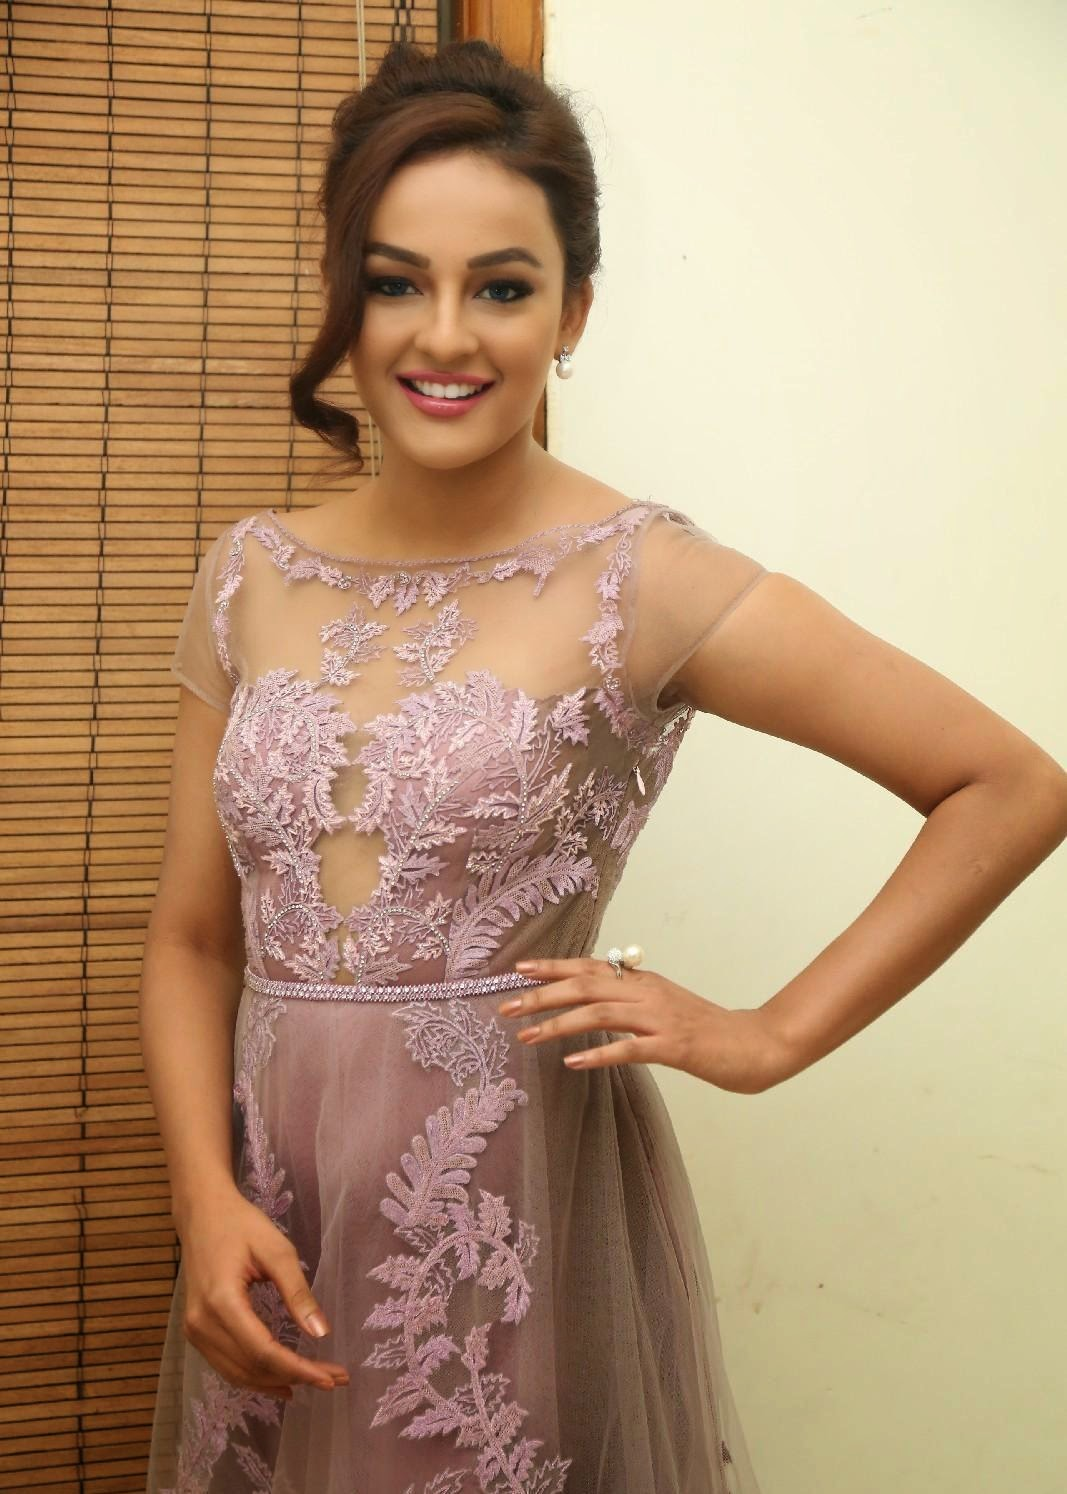 High Quality Bollywood Celebrity Pictures Seerat Kapoor -2887